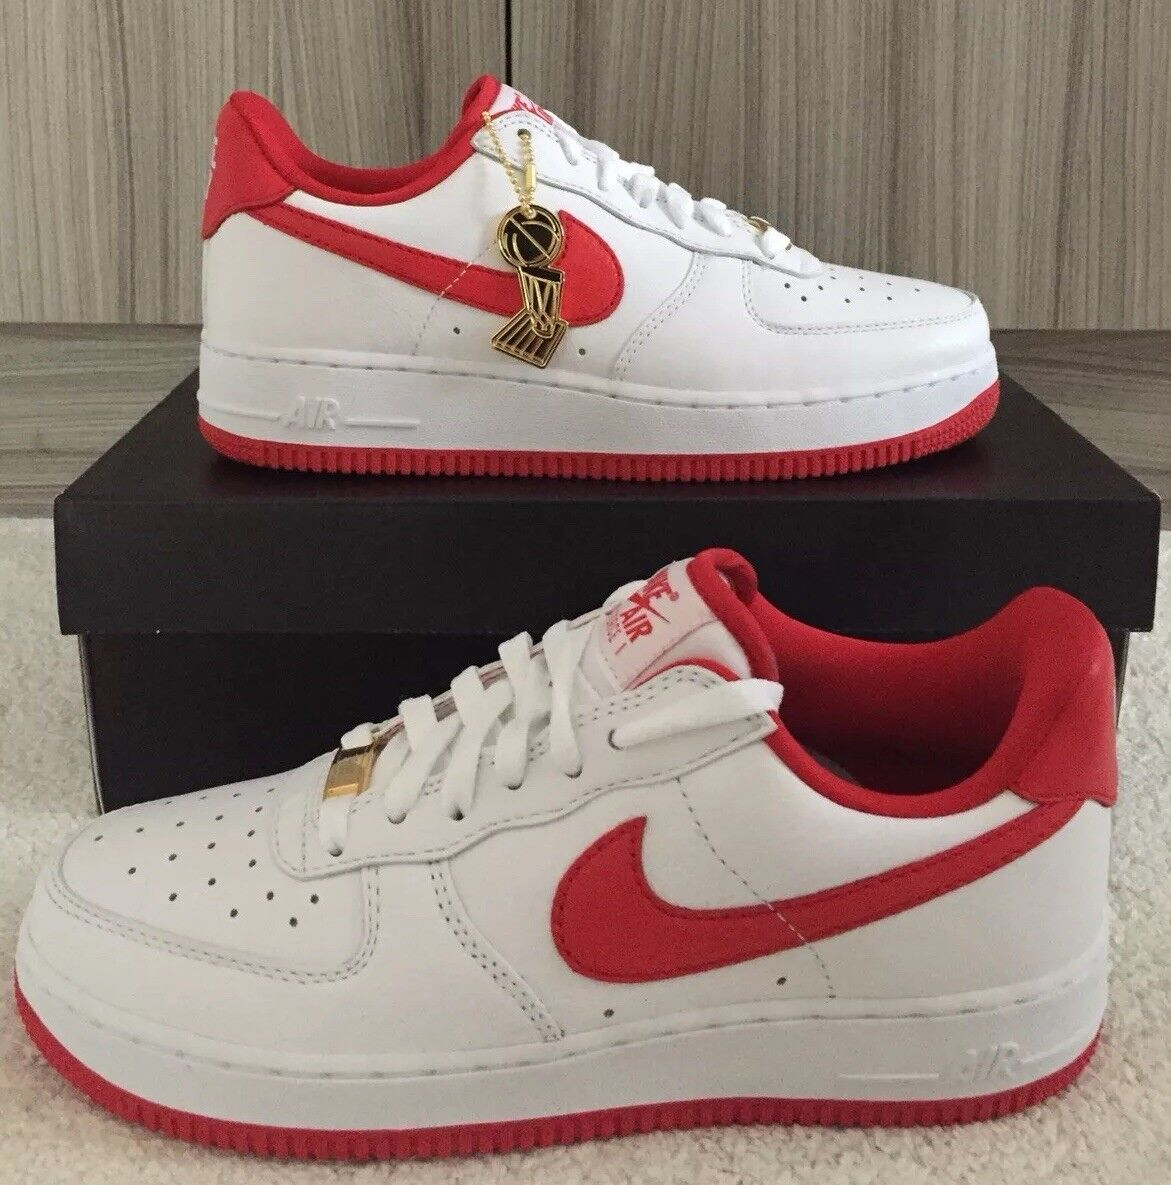 1 Force Air Faible Nike 6 Taille FO Fi Fo rhim1c2962902